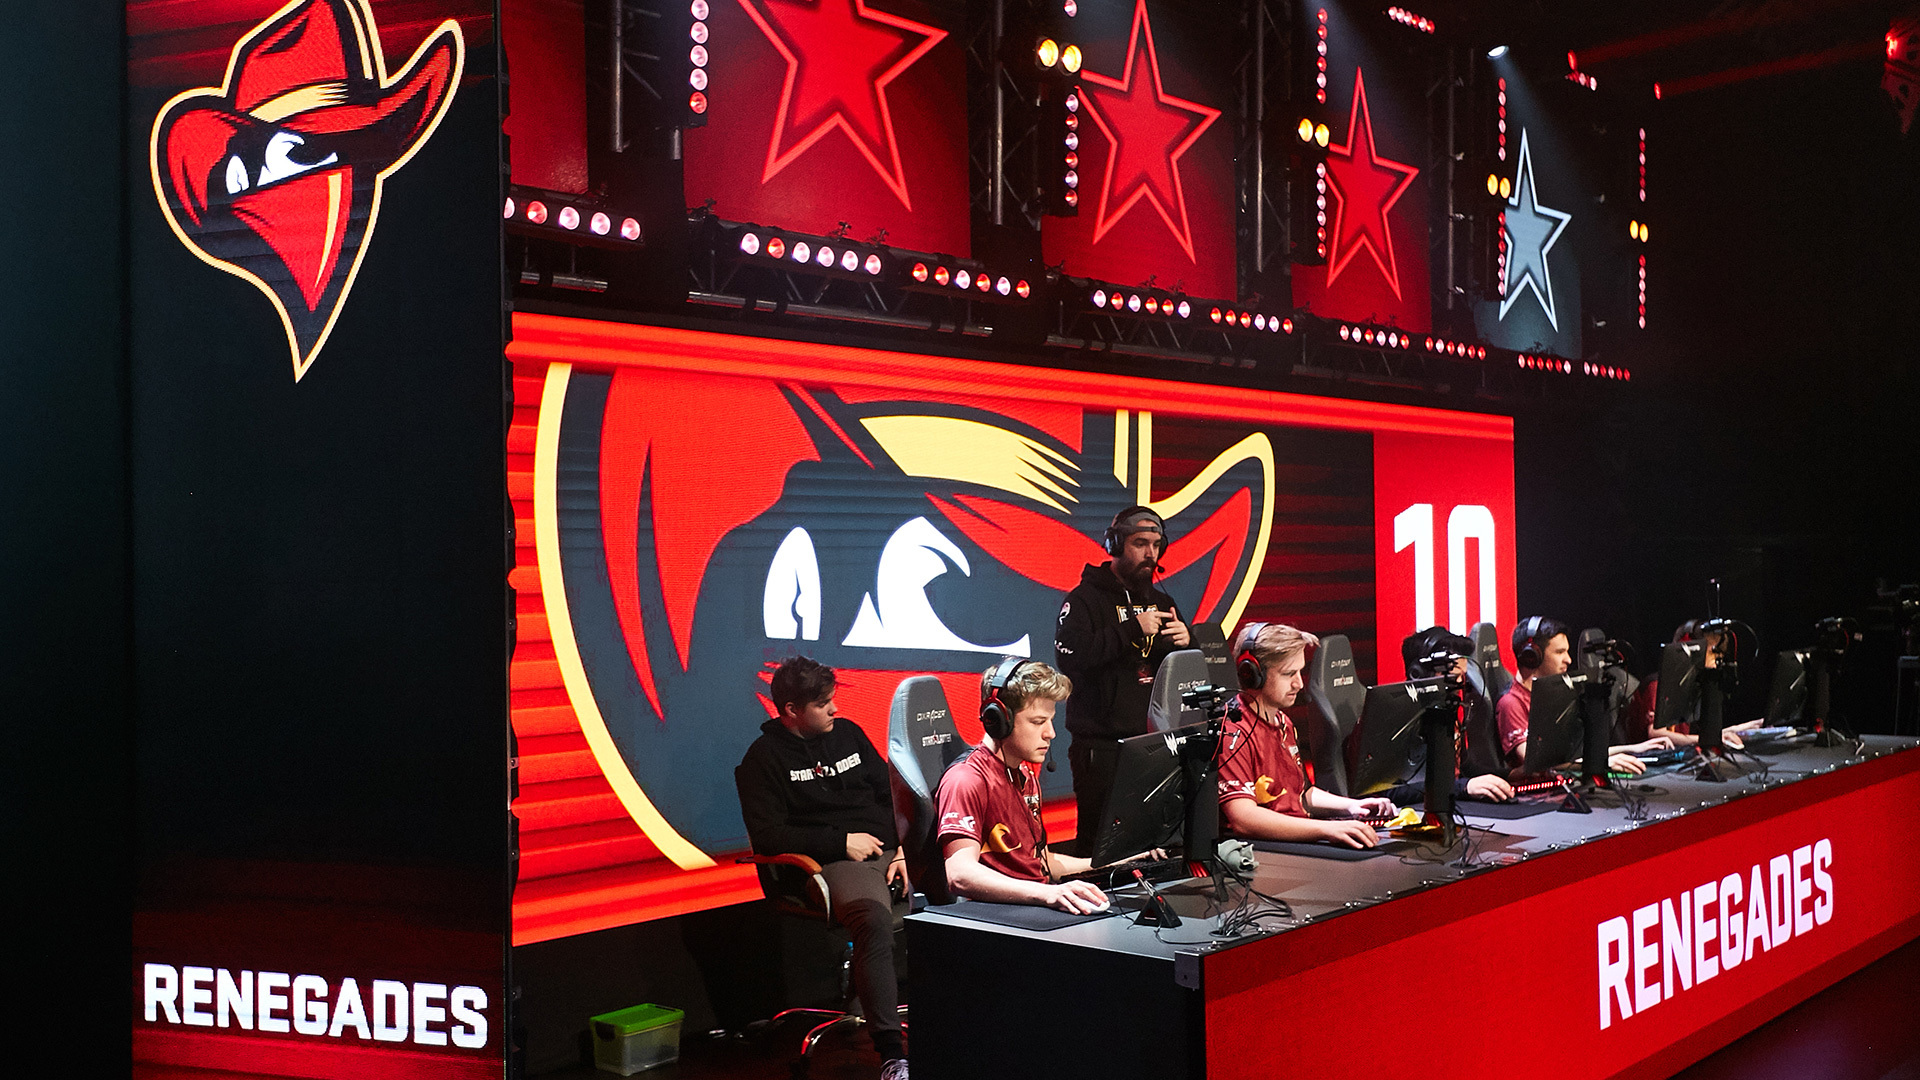 Renegades to replace mousesports at StarSeries i-League S7